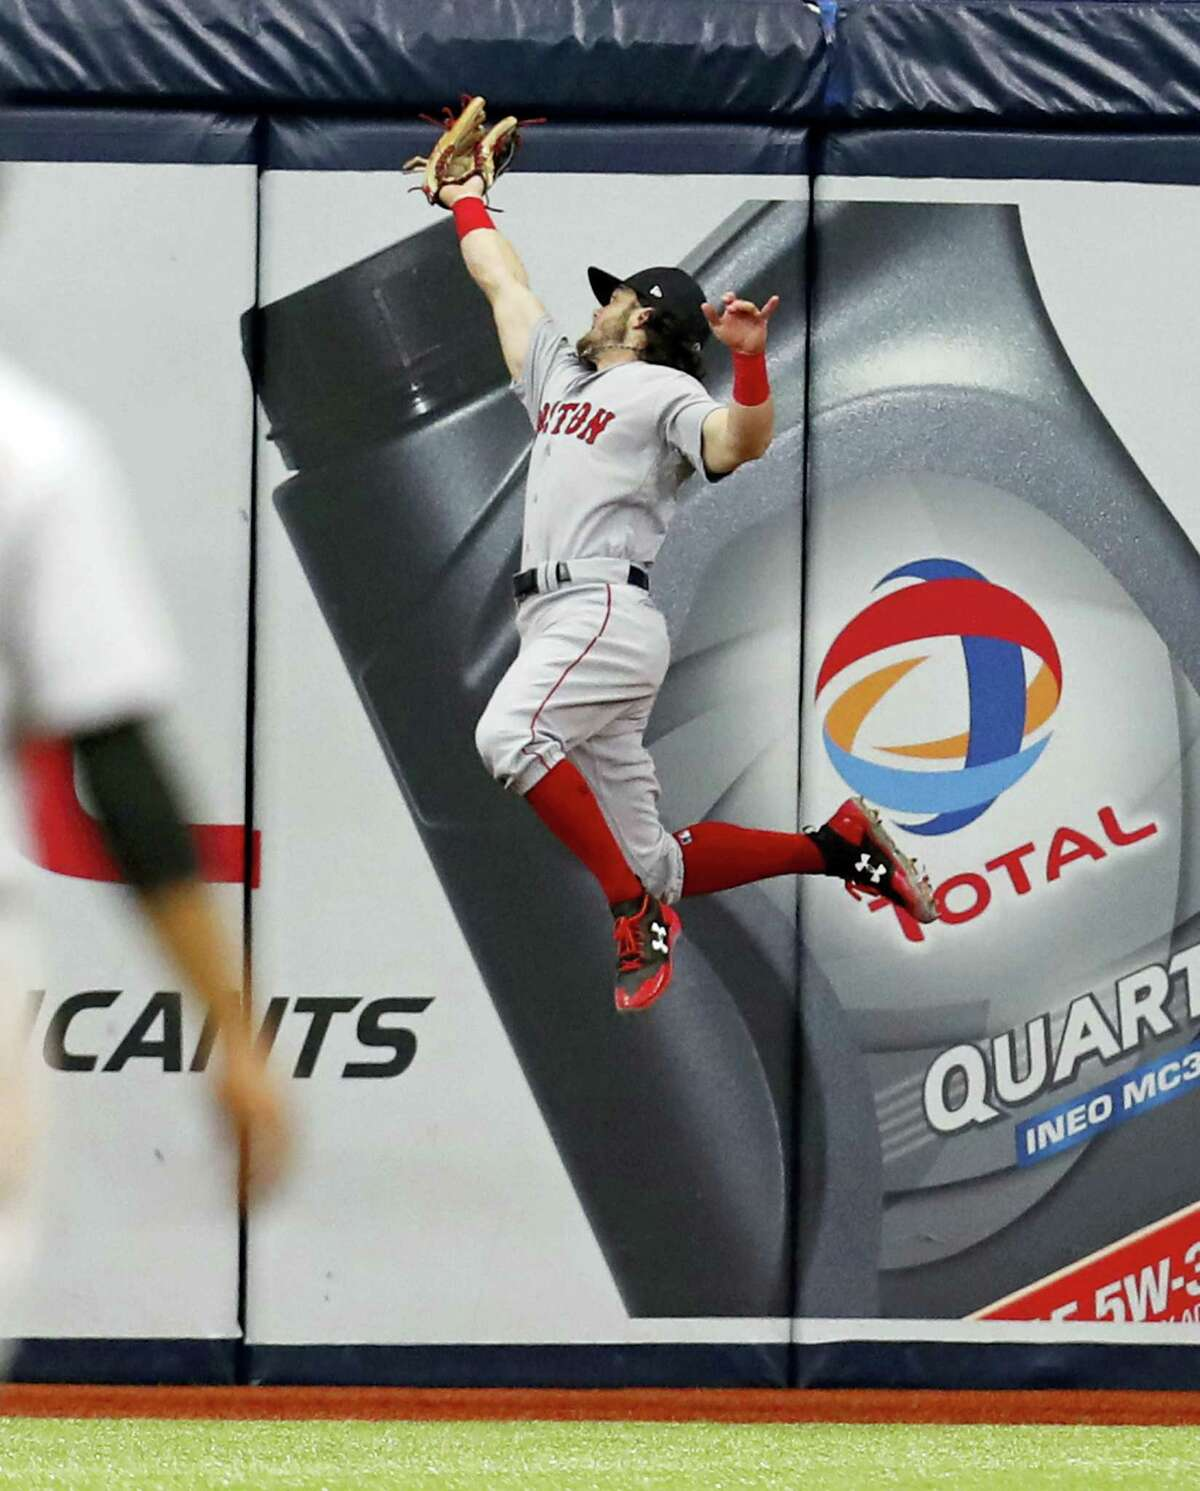 Red Sox center fielder Andrew Benintendi makes a leaping catch in the seventh inning Saturday in St. Petersburg, Fla.